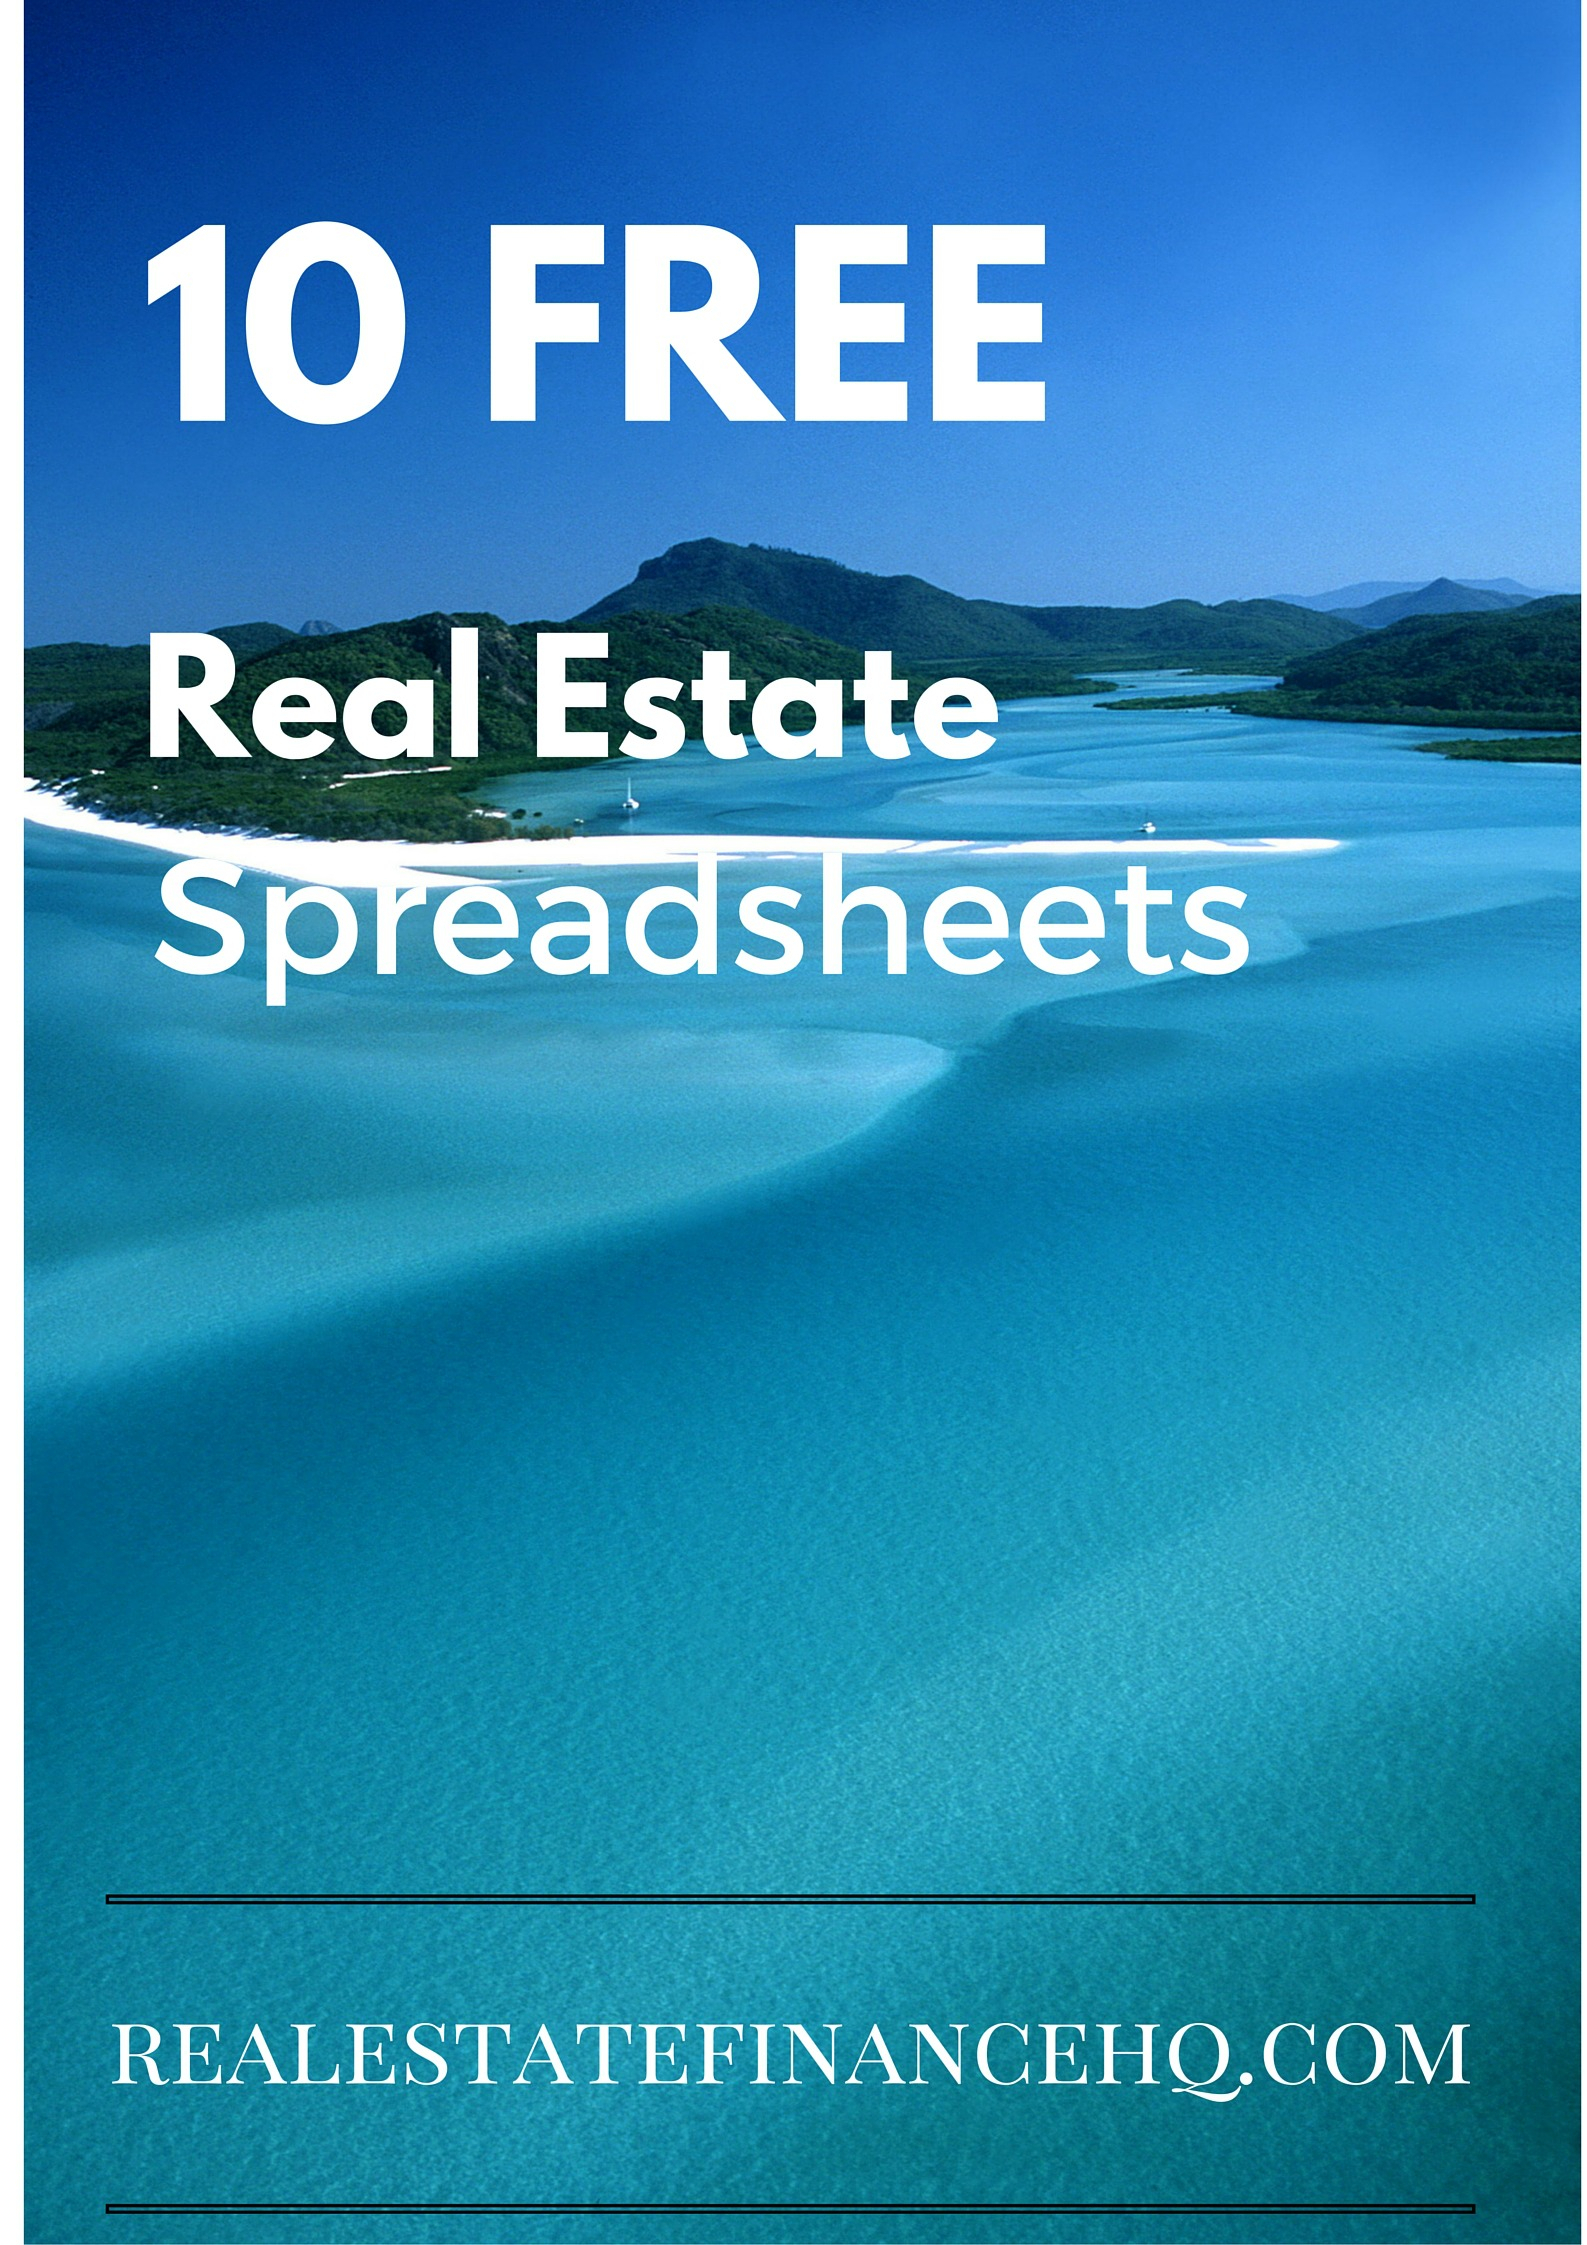 Free House Flipping Excel Spreadsheet With 10 Free Real Estate Spreadsheets  Real Estate Finance